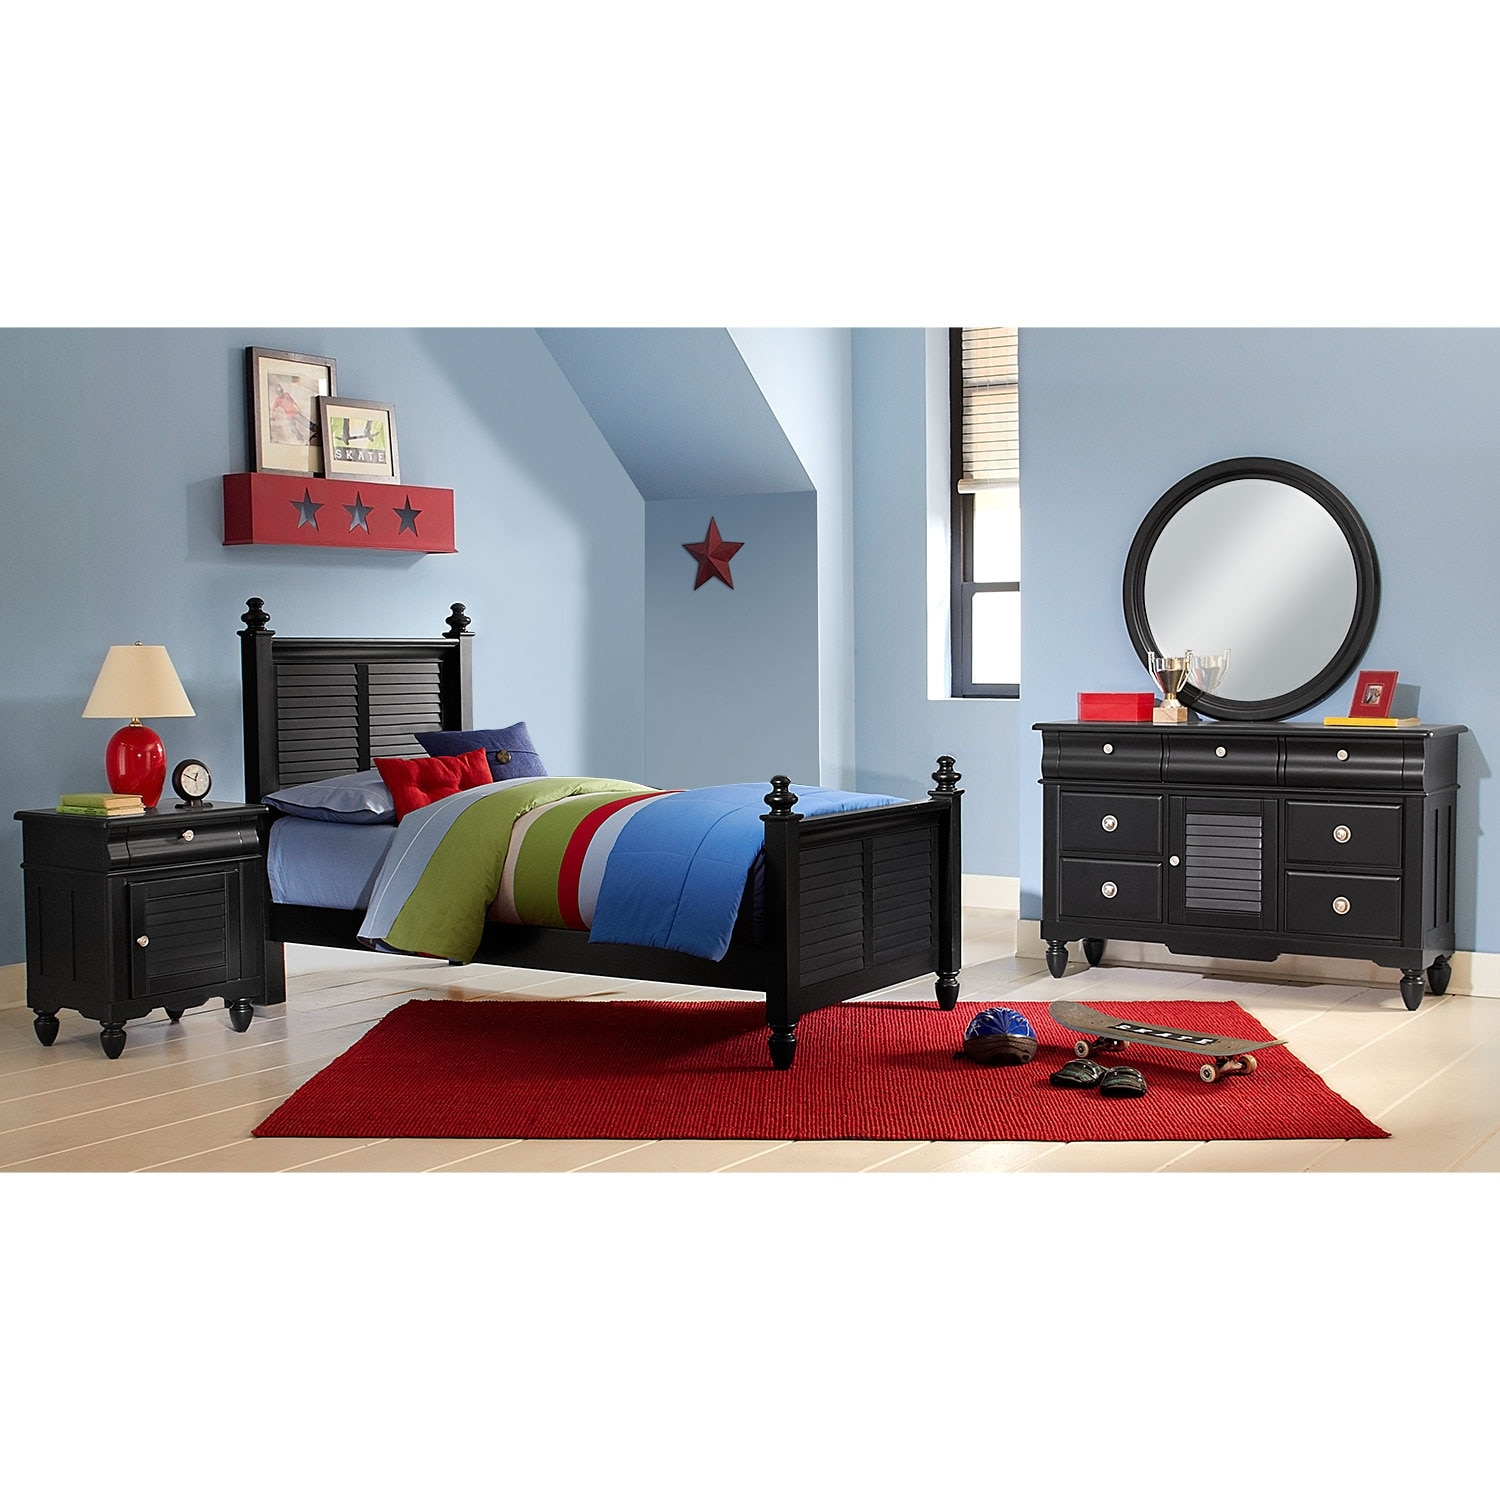 Seaside 6-Piece Twin Bedroom Set - Black